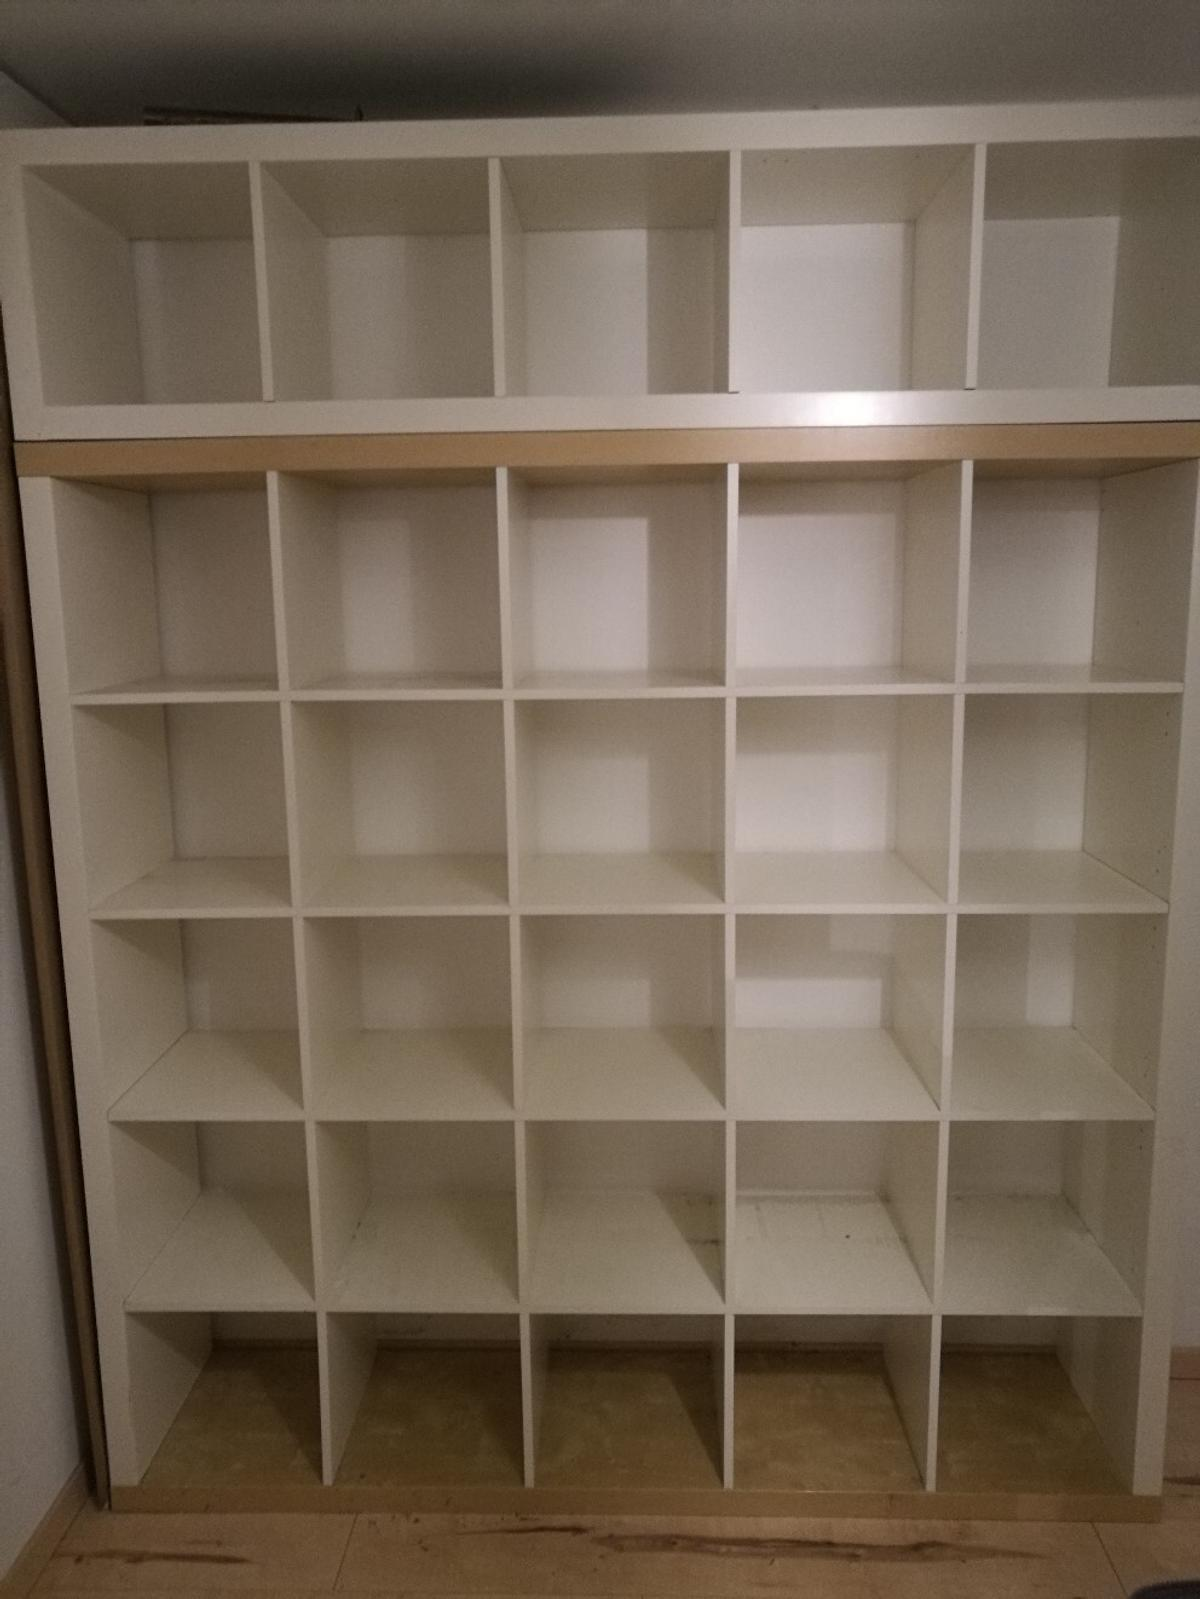 Ikea Expedit Regal 55 In 86154 Augsburg For Free For Sale